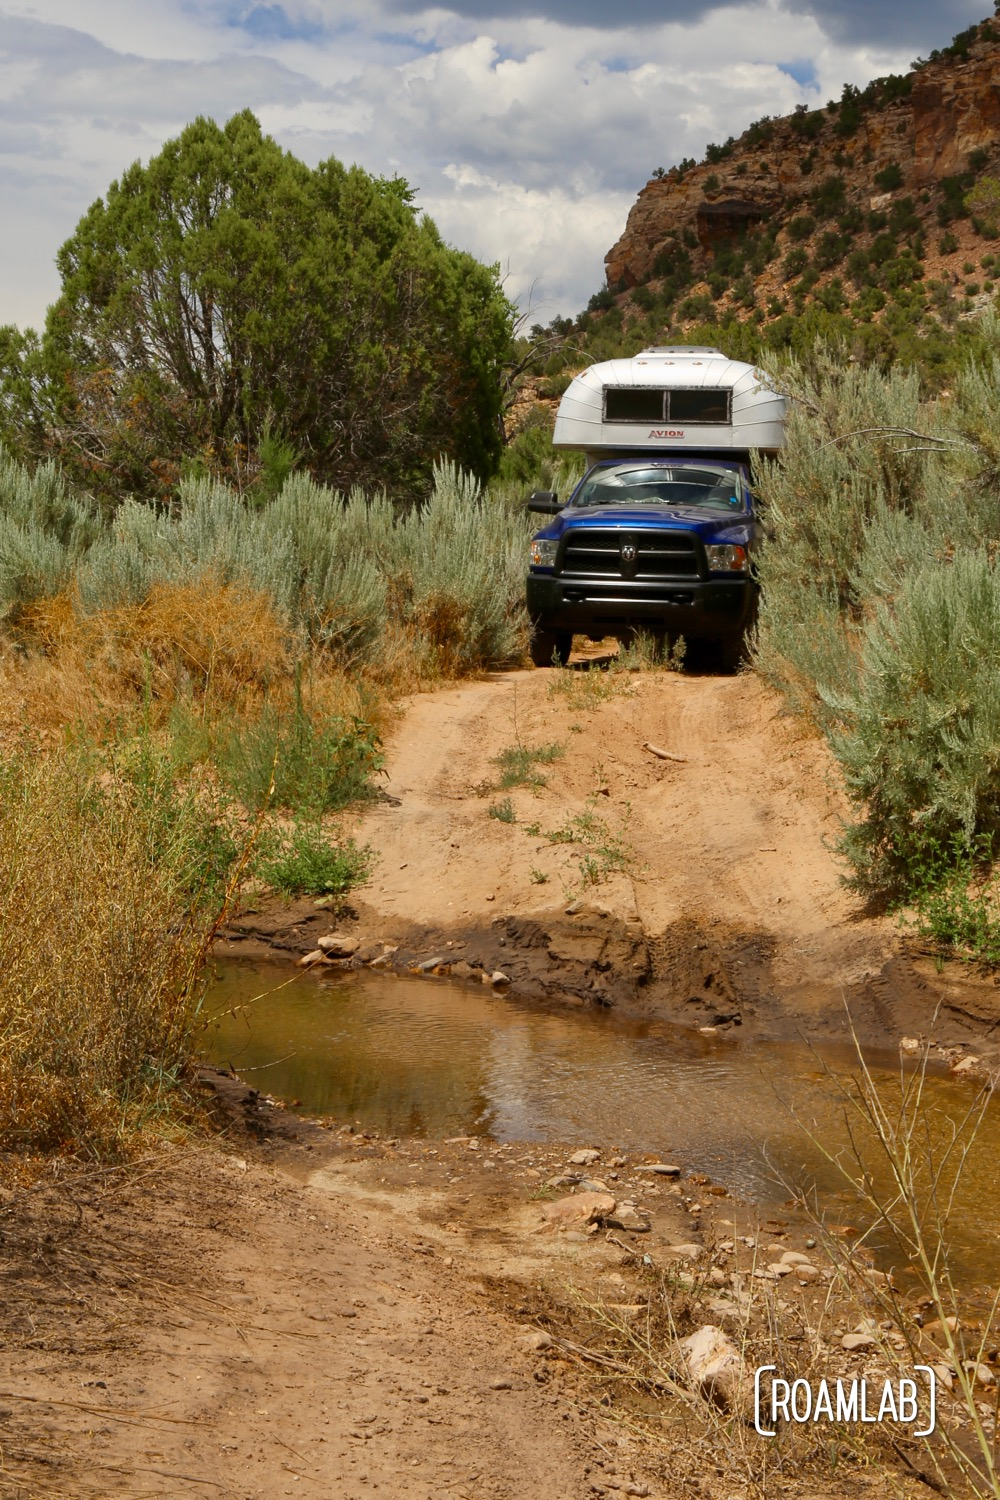 There are a few creak crossings along the trail. While the water is never that deep, the entries always have me concerned that we will bottom out and damage the rear end of the camper.